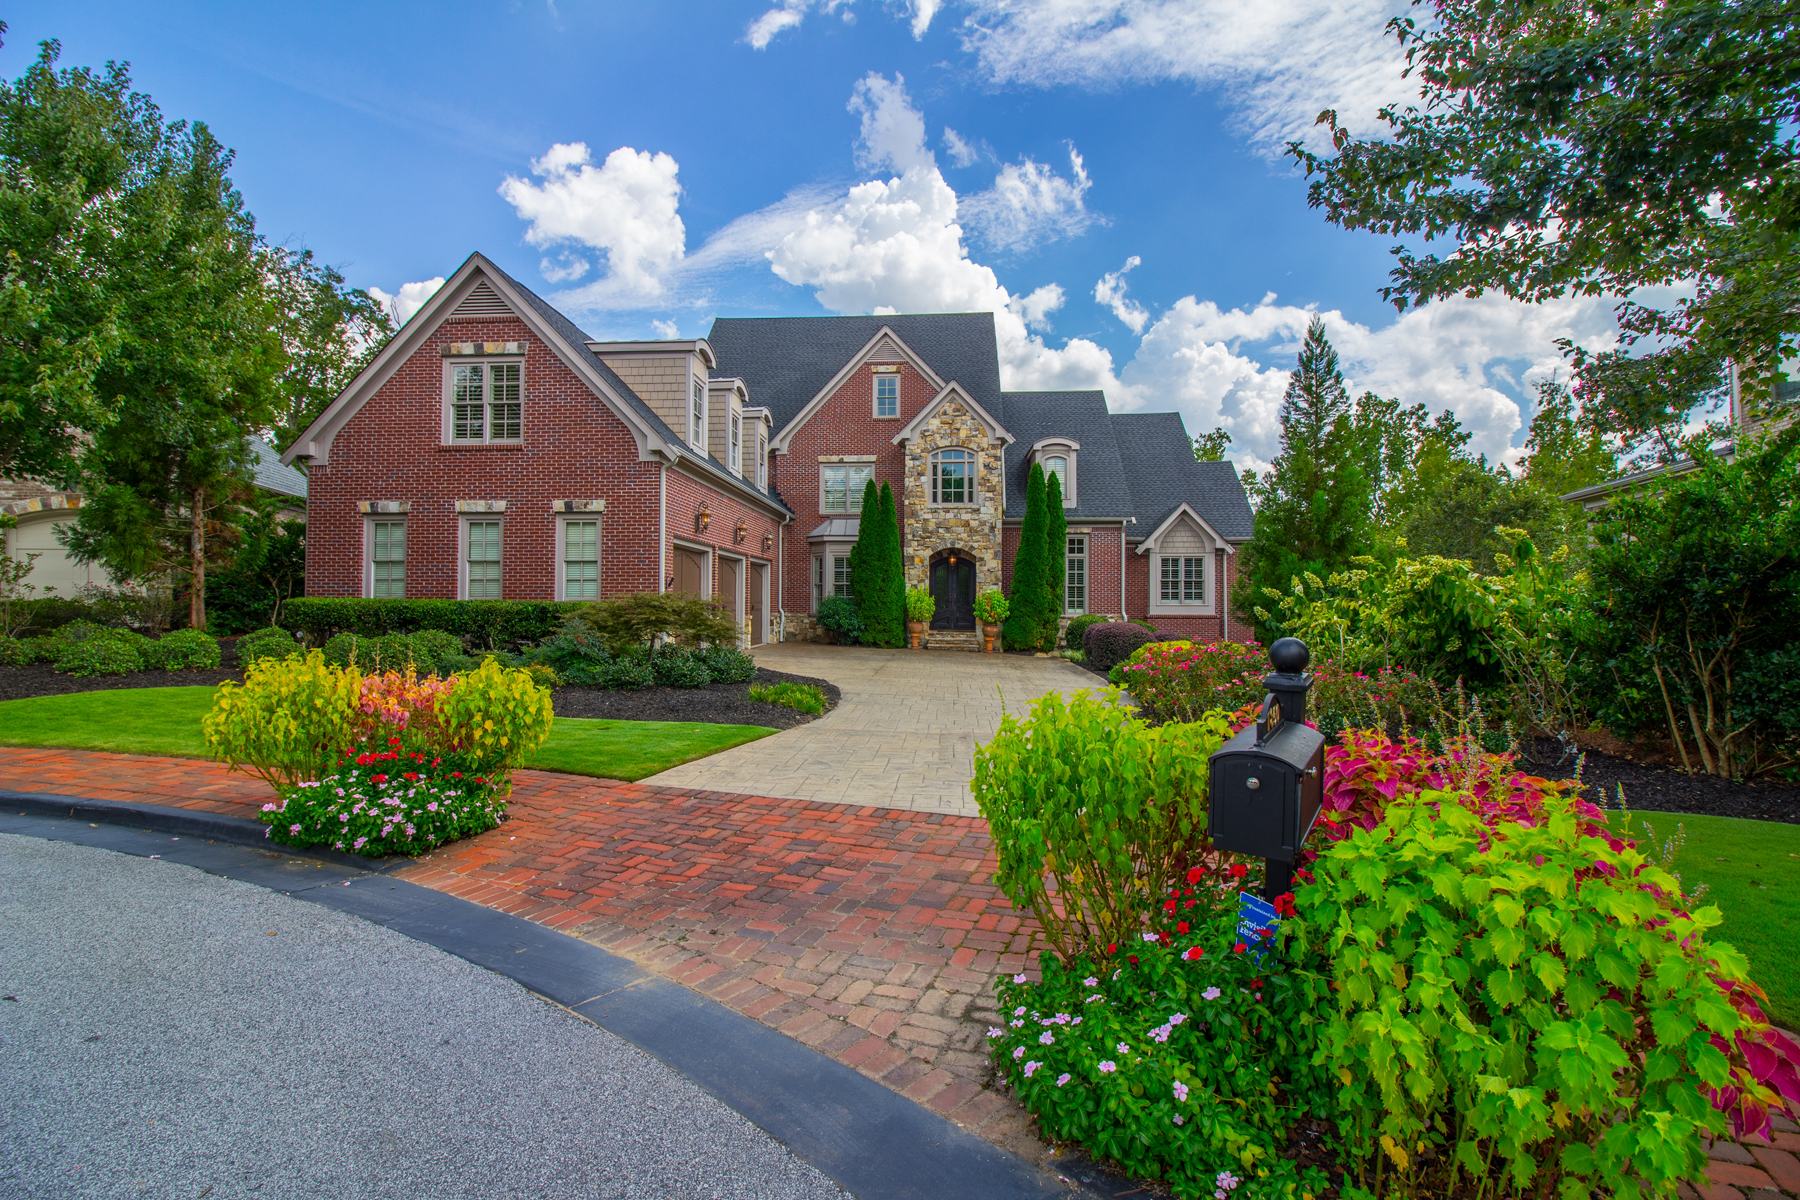 Single Family Home for Sale at Stunning East Cobb Masterpiece 1850 High Trail Atlanta, Georgia, 30339 United States